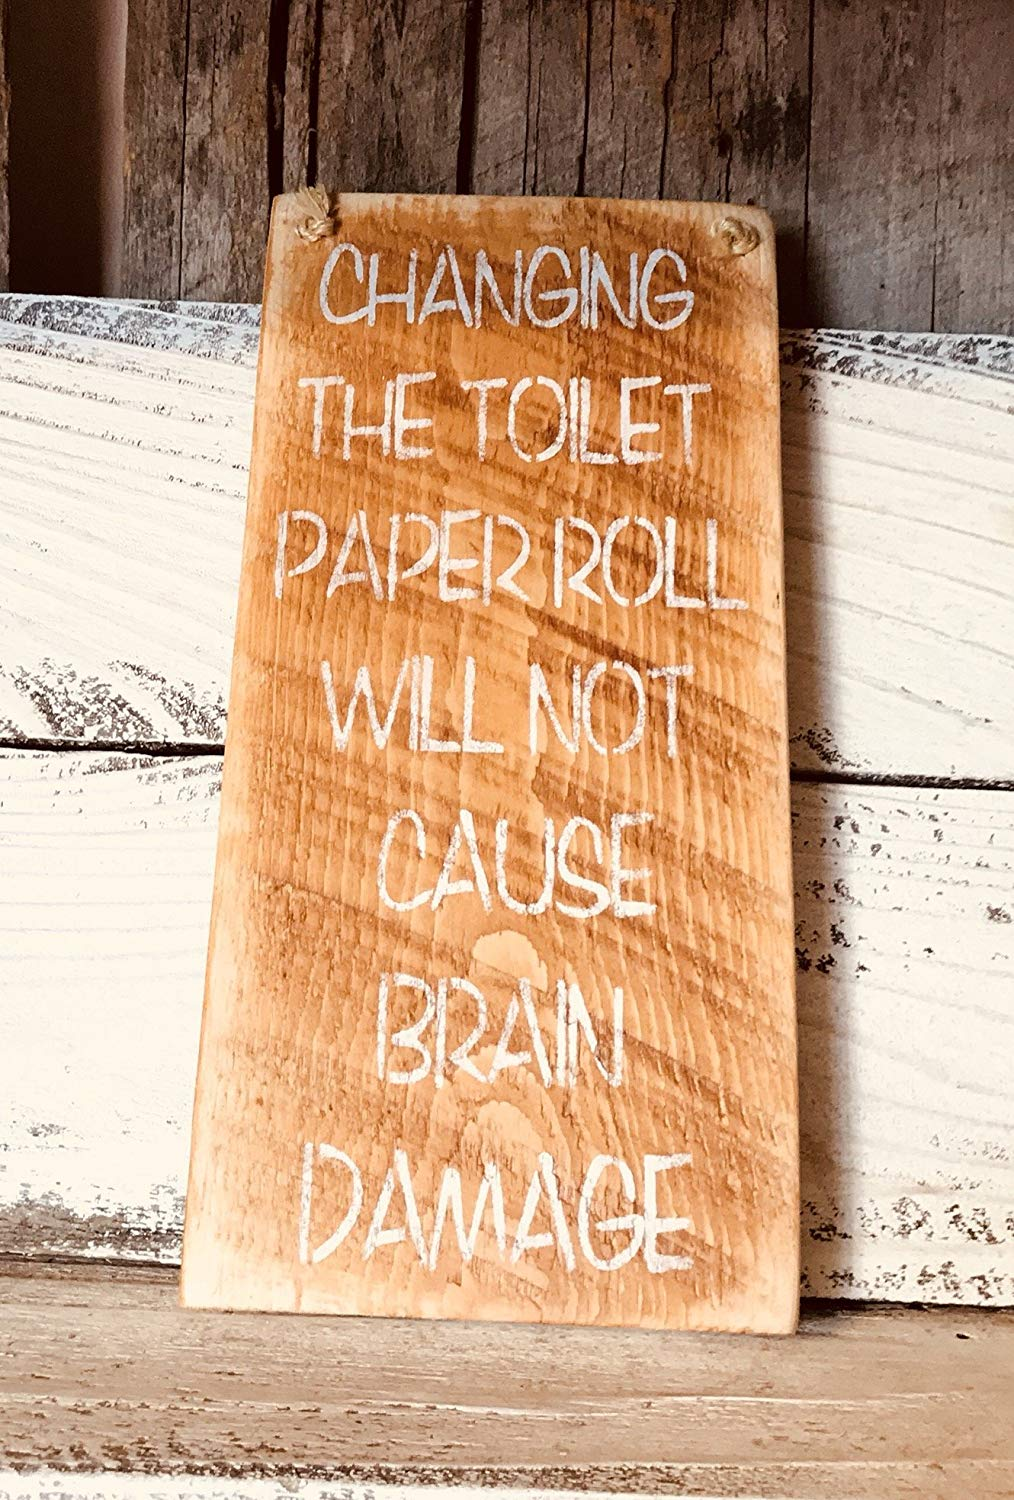 Changing The Toilet Paper Roll Will Not Cause Brain Damage Barn Wood Sign